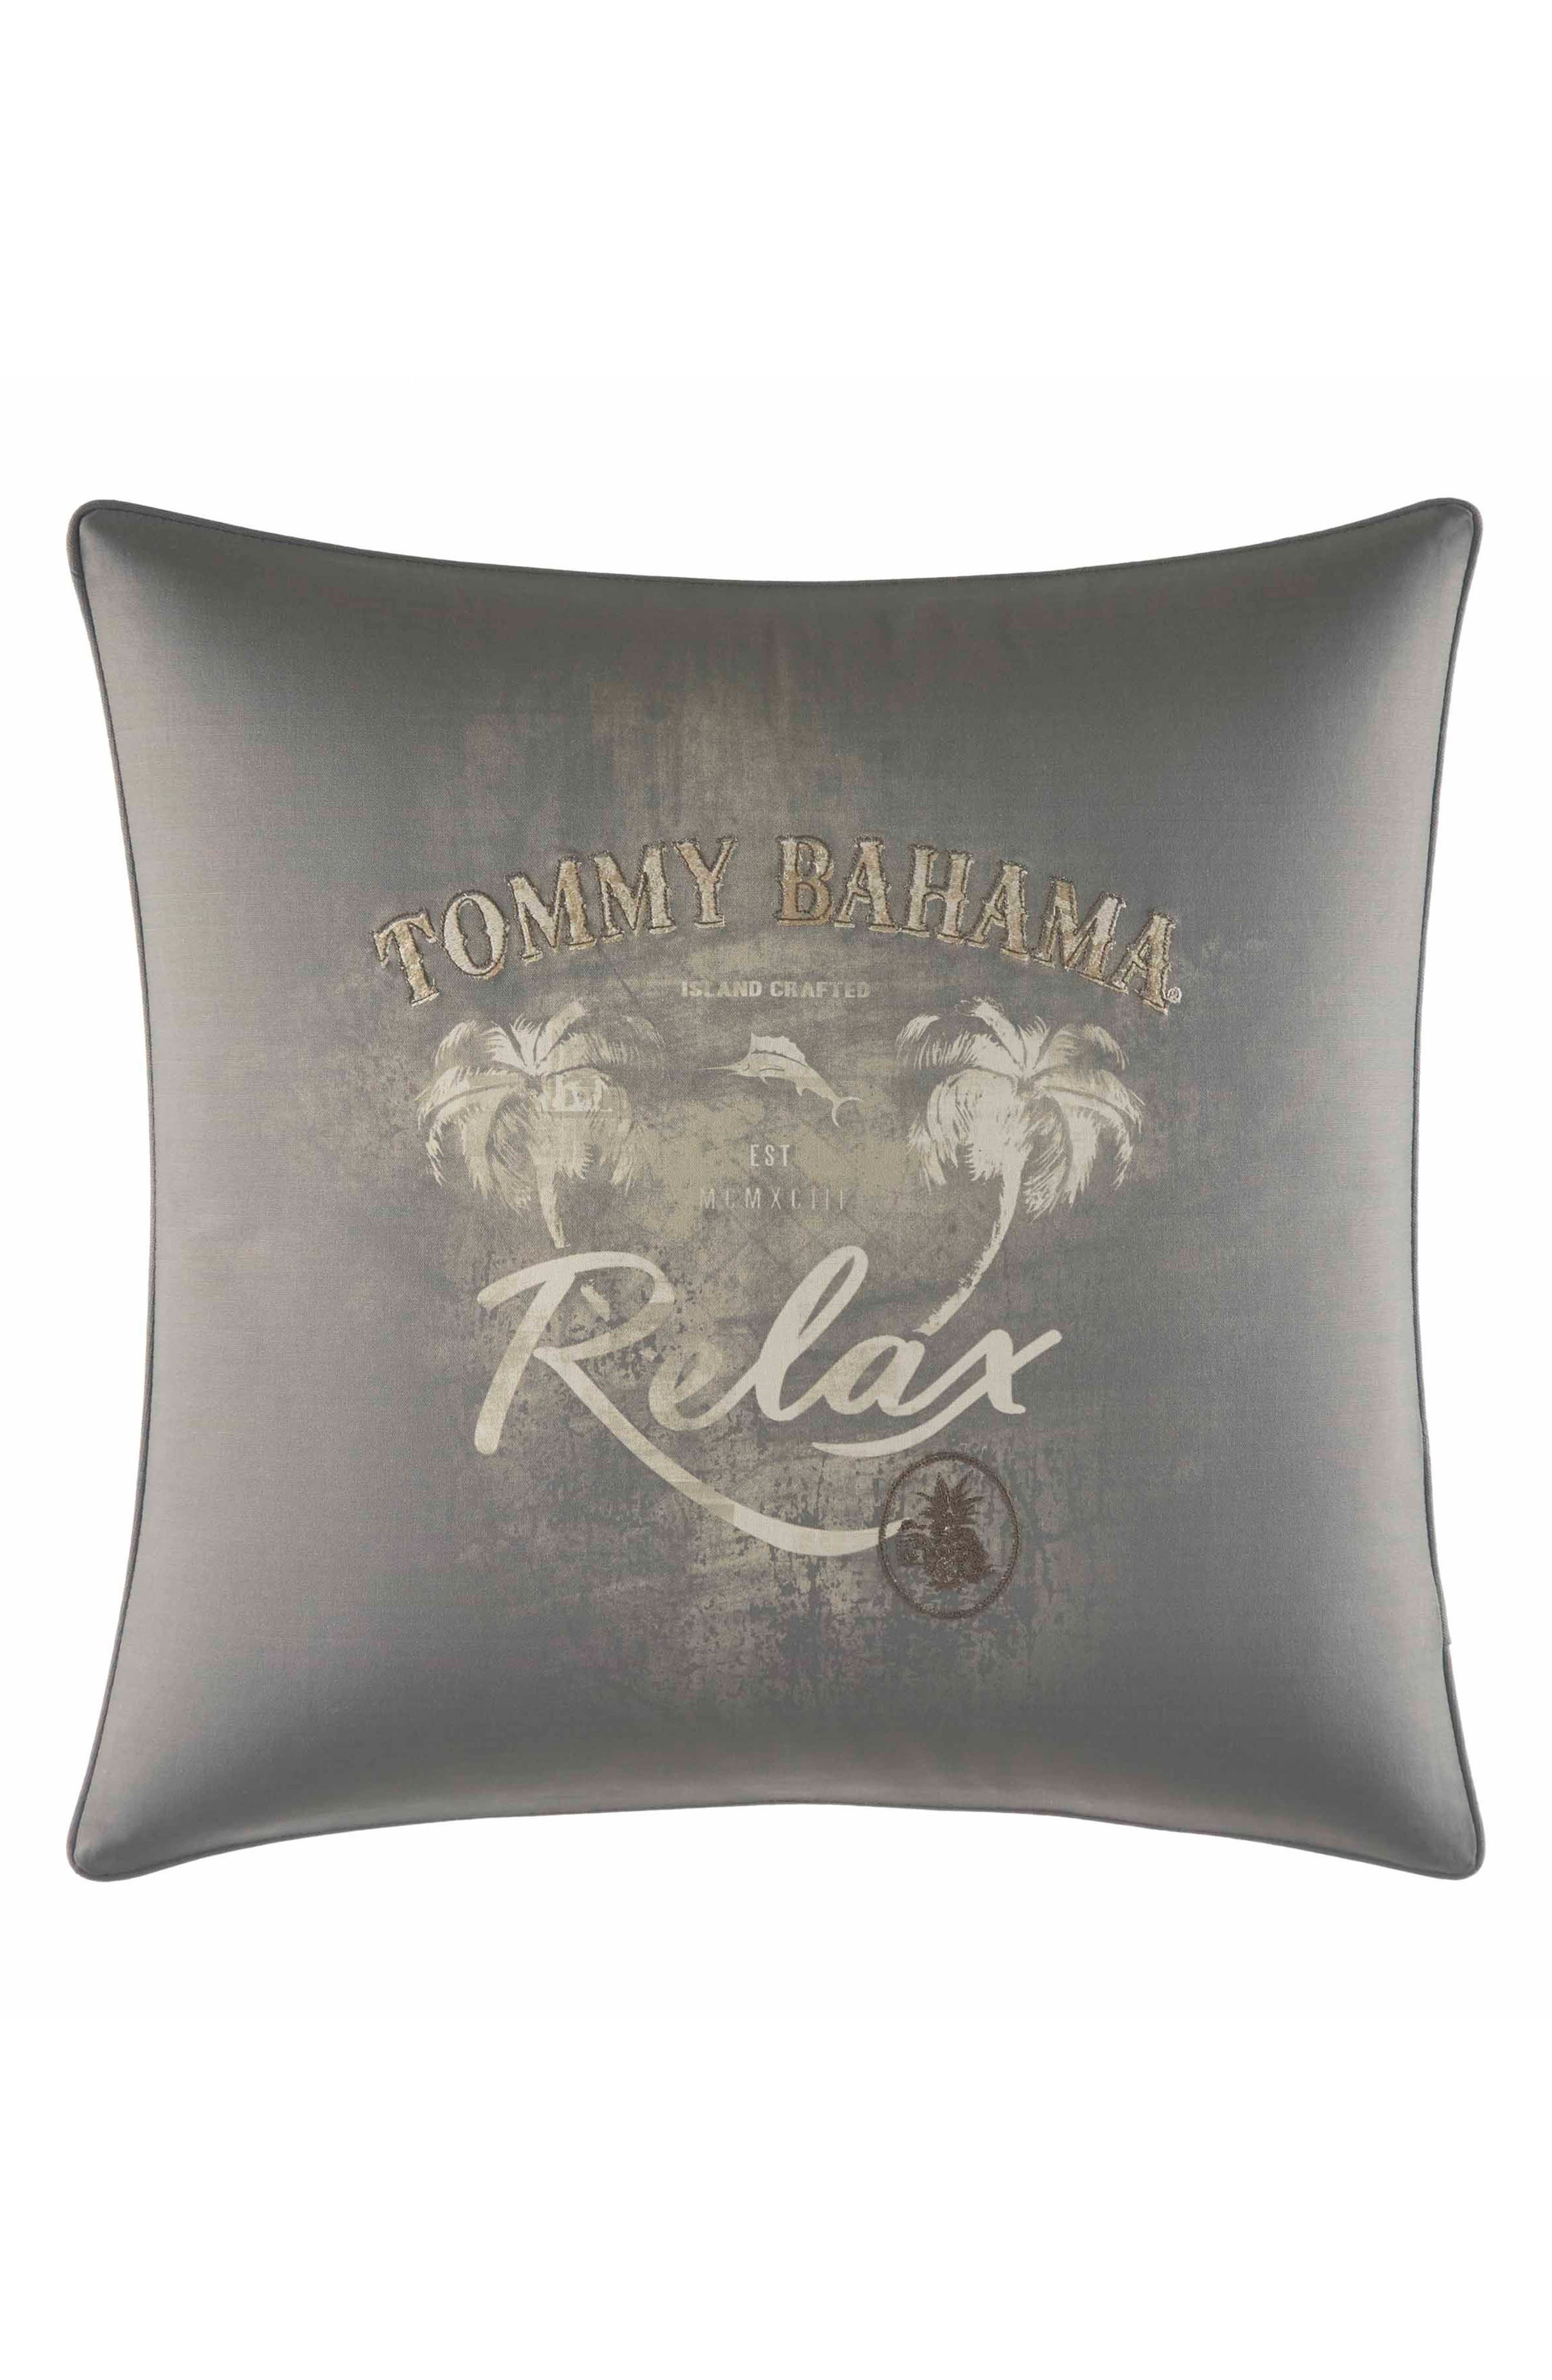 Alternate Image 1 Selected - Tommy Bahama Relax Pillow